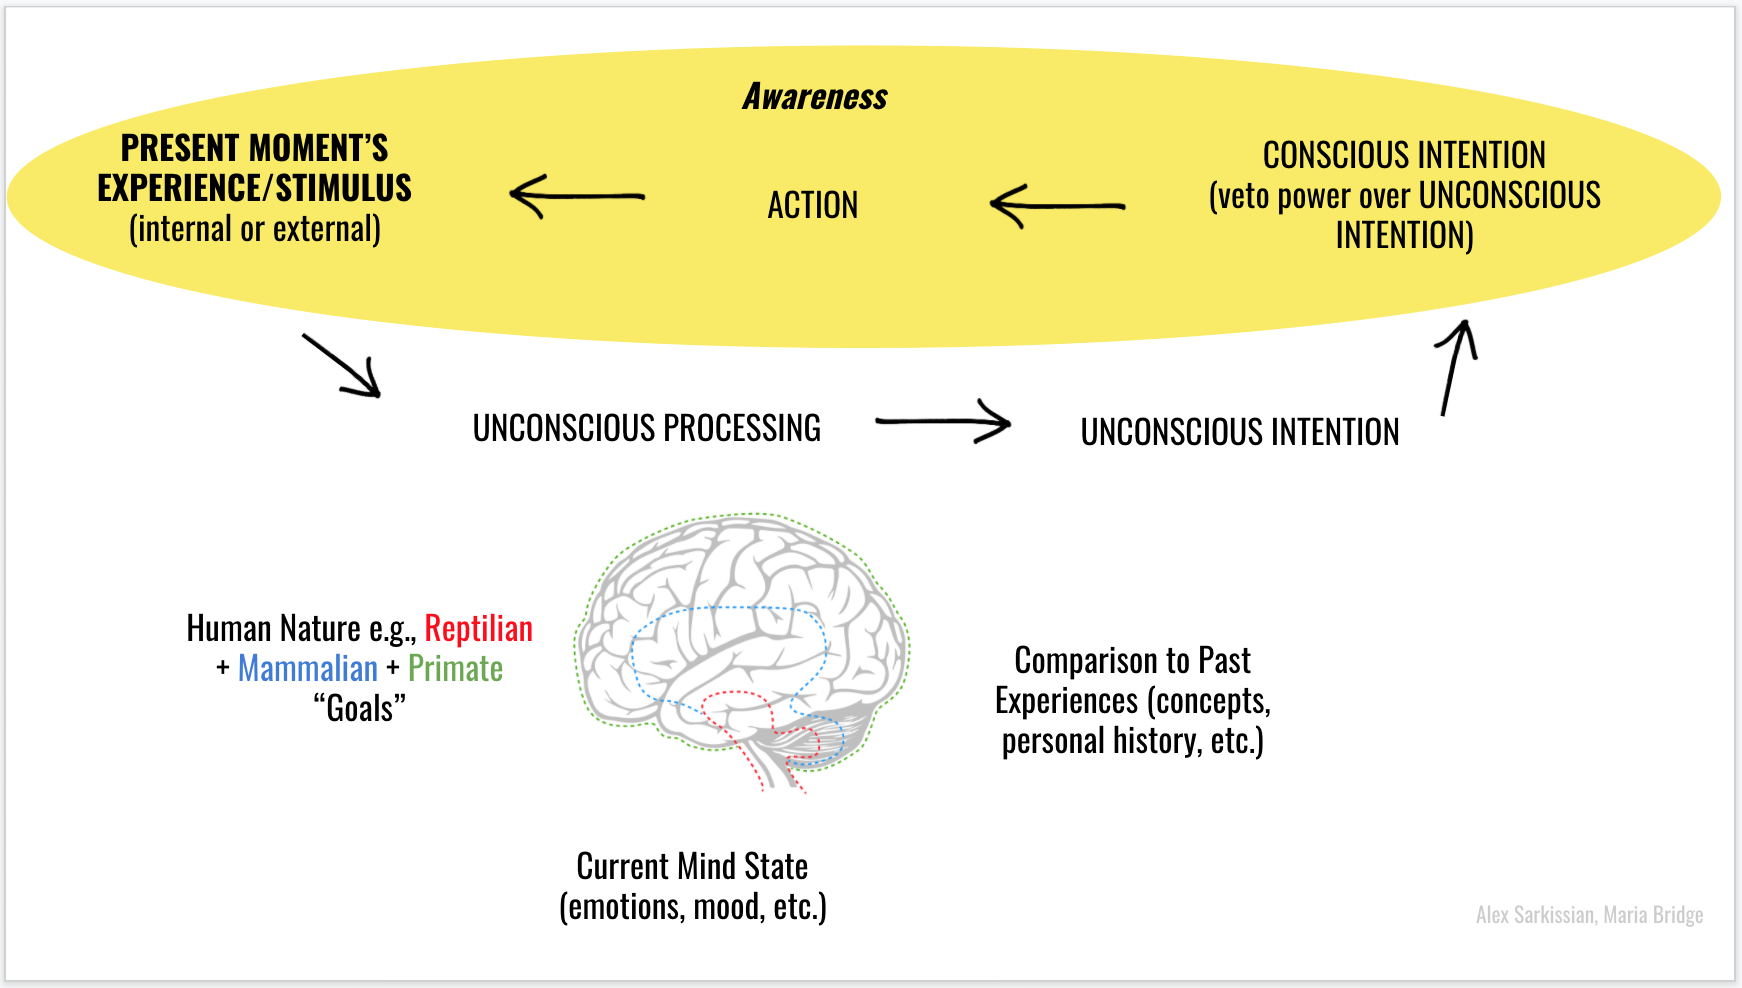 A flow chart diagram, showing how awareness helps us to have veto power over unconscious intentions.